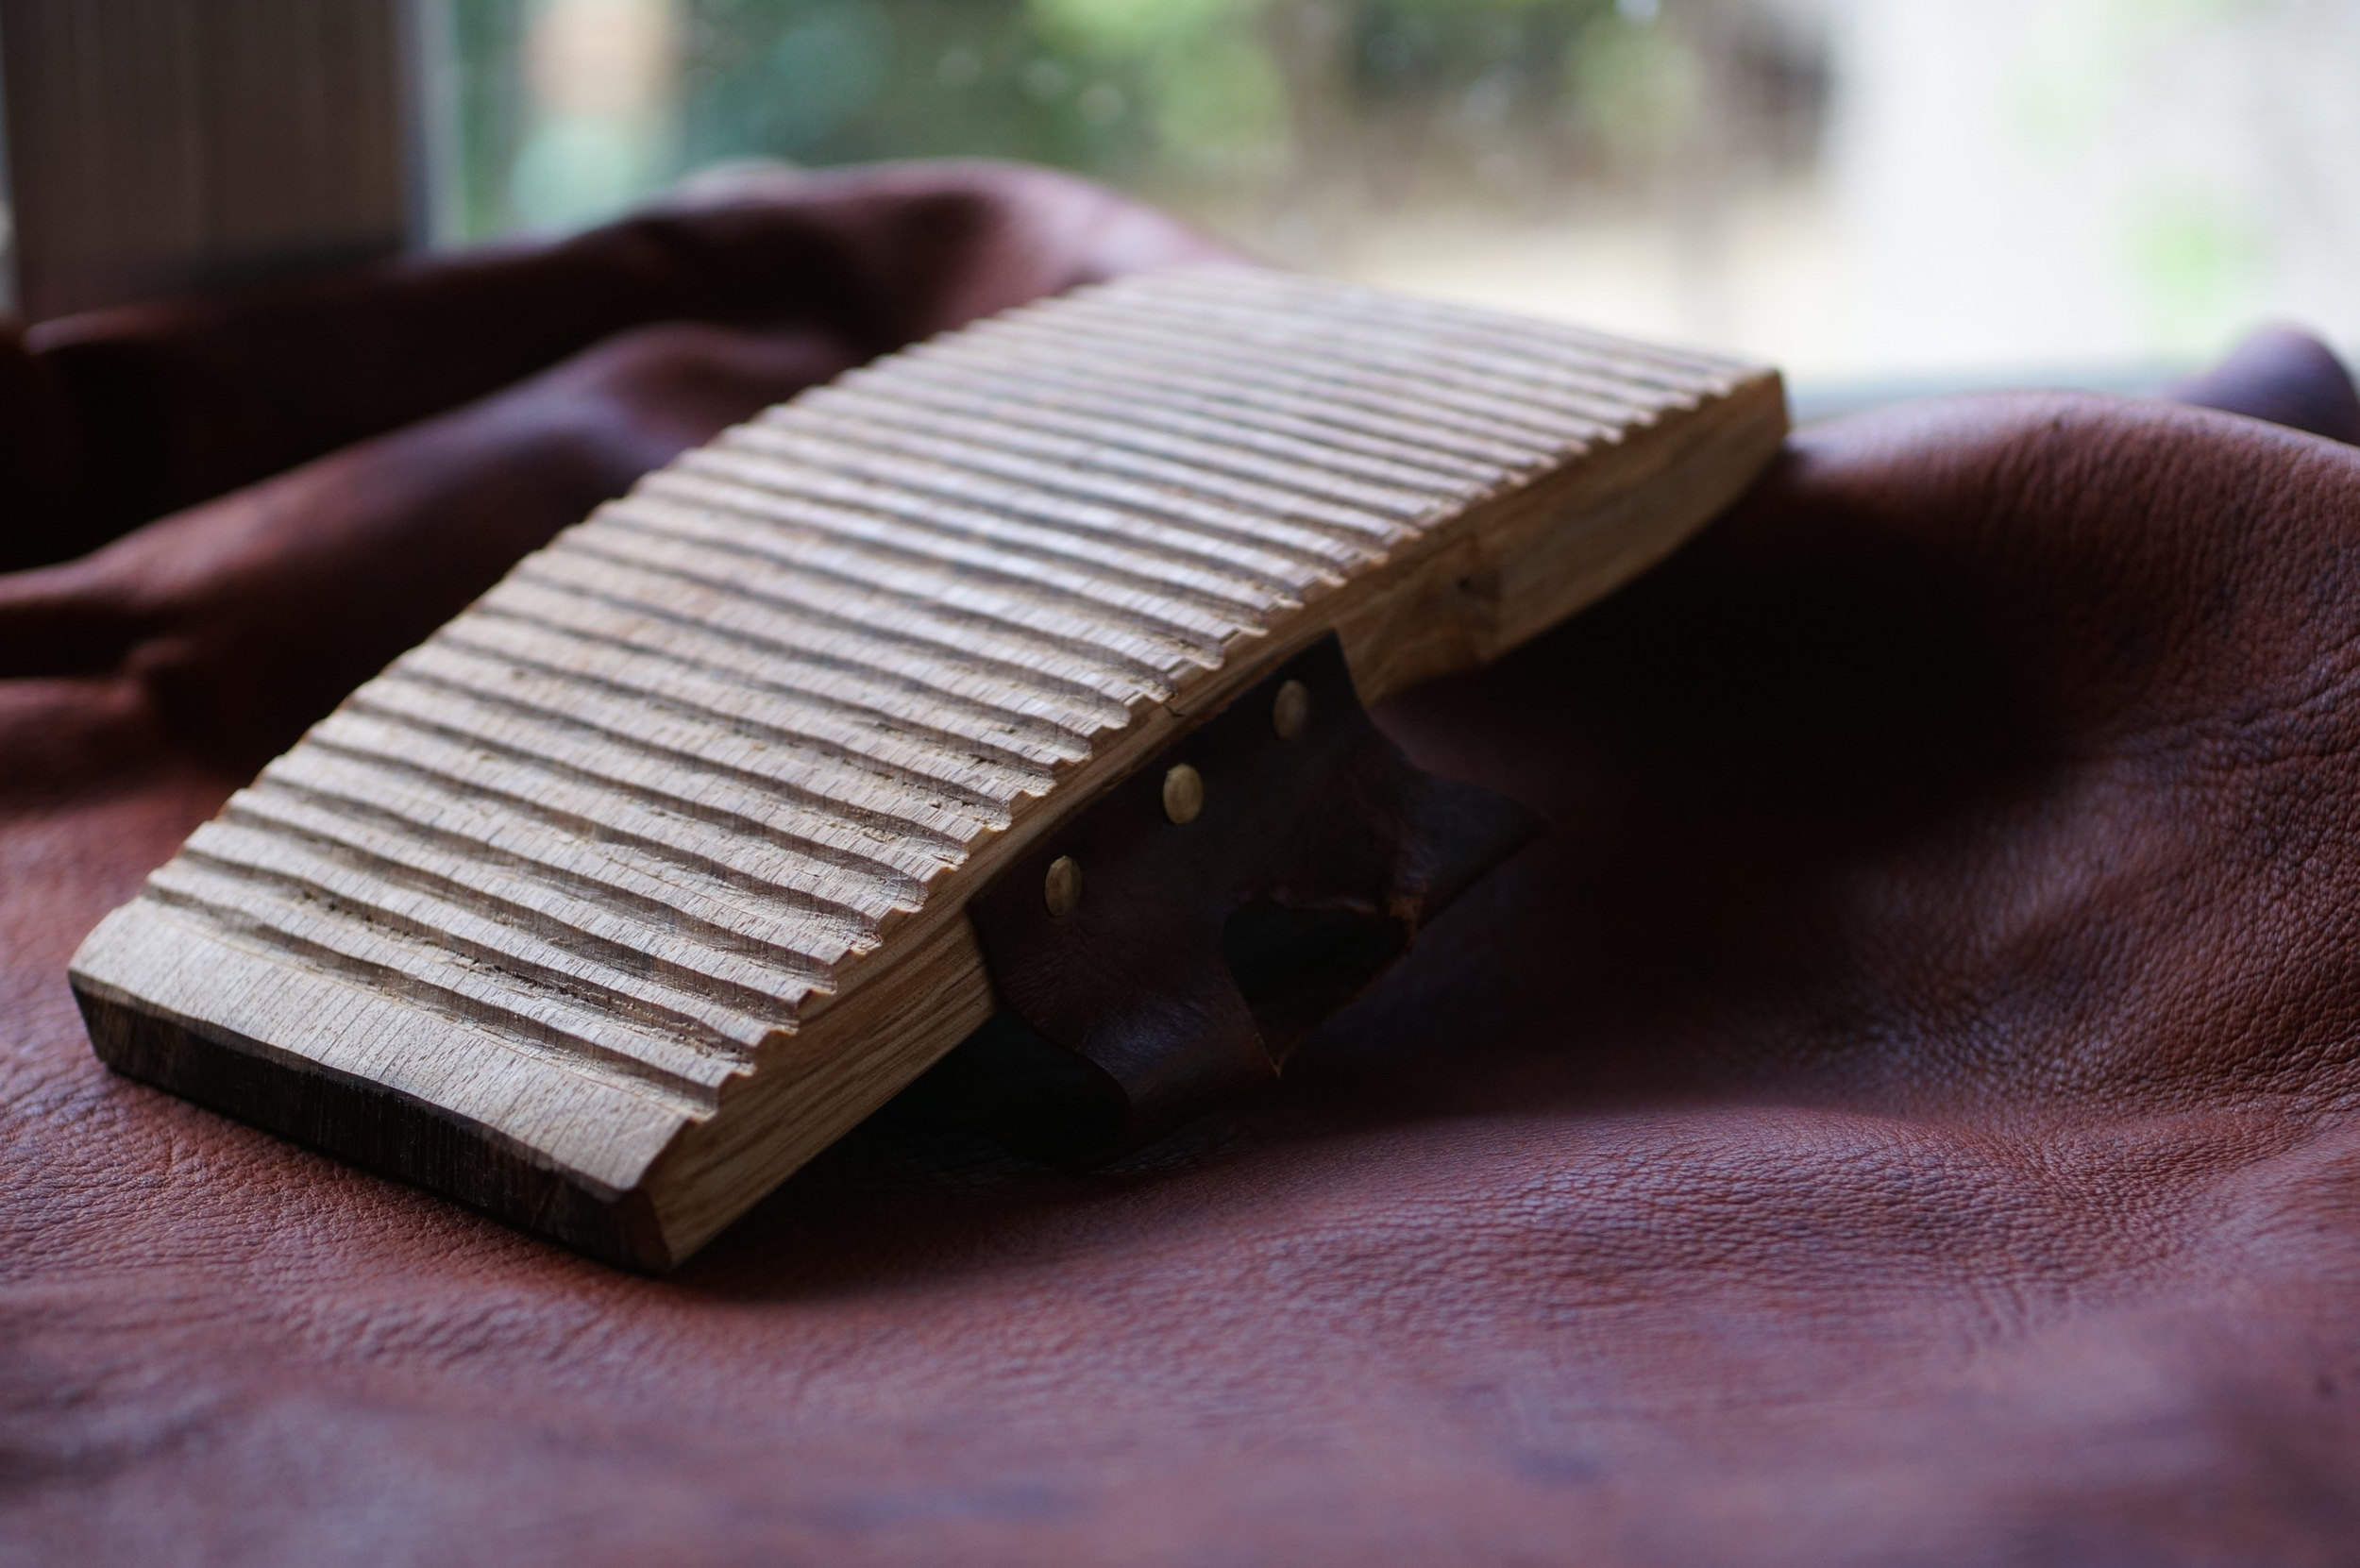 Graining board for softening and raising the grain of leather.